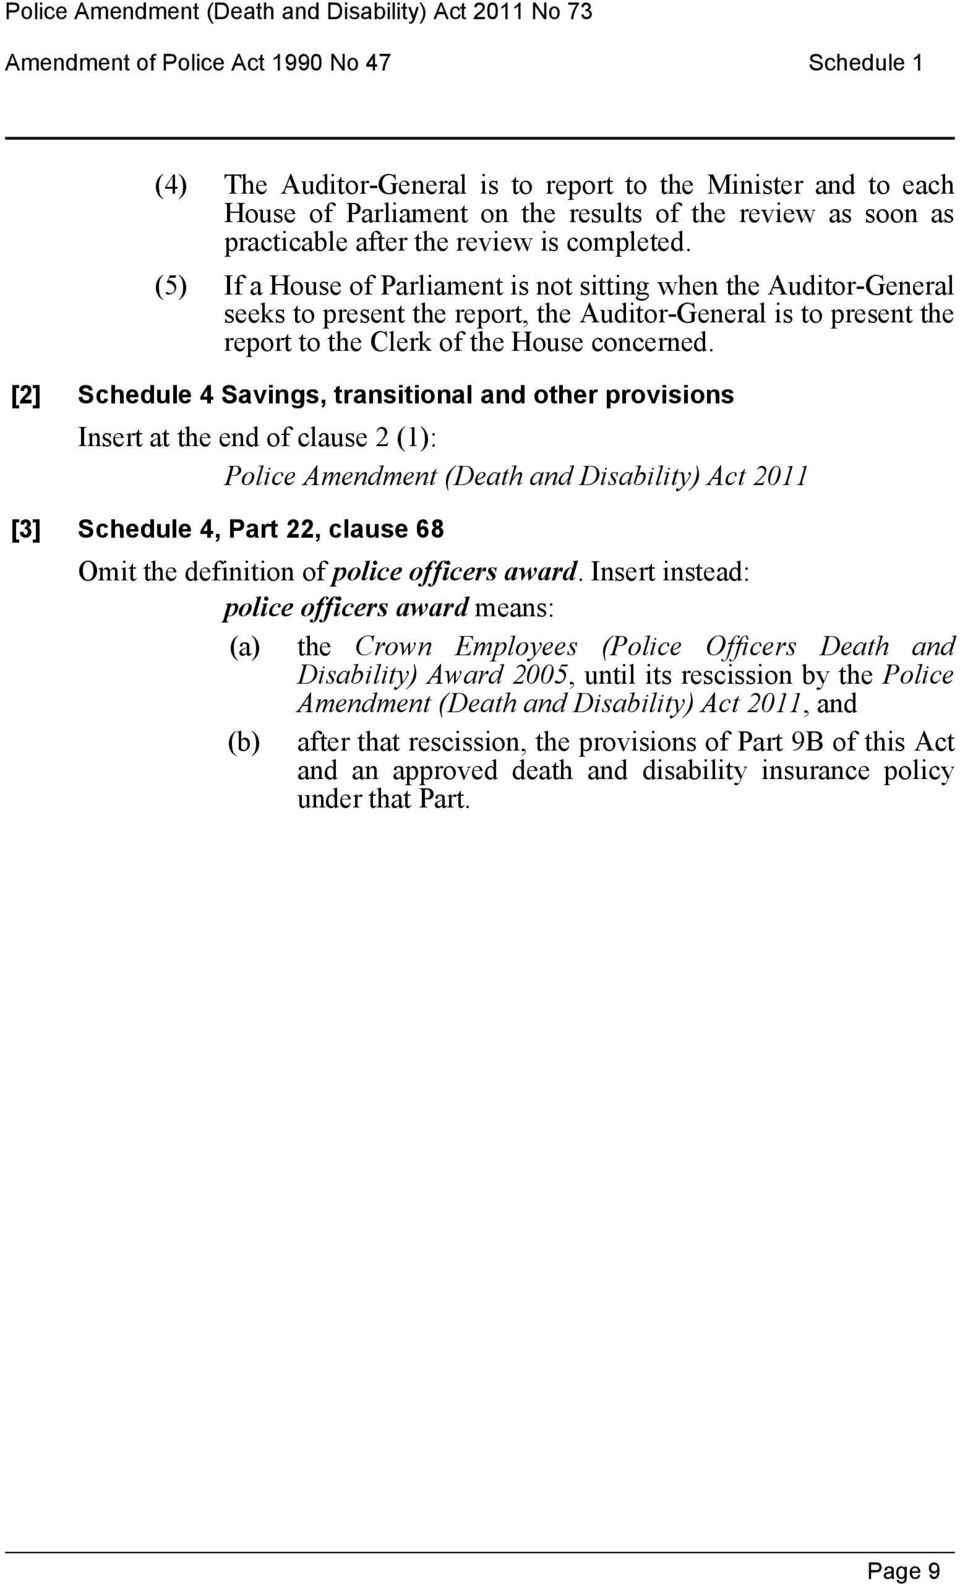 [2] Schedule 4 Savings, transitional and other provisions Insert at the end of clause 2 (1): Police Amendment (Death and Disability) Act 2011 [3] Schedule 4, Part 22, clause 68 Omit the definition of